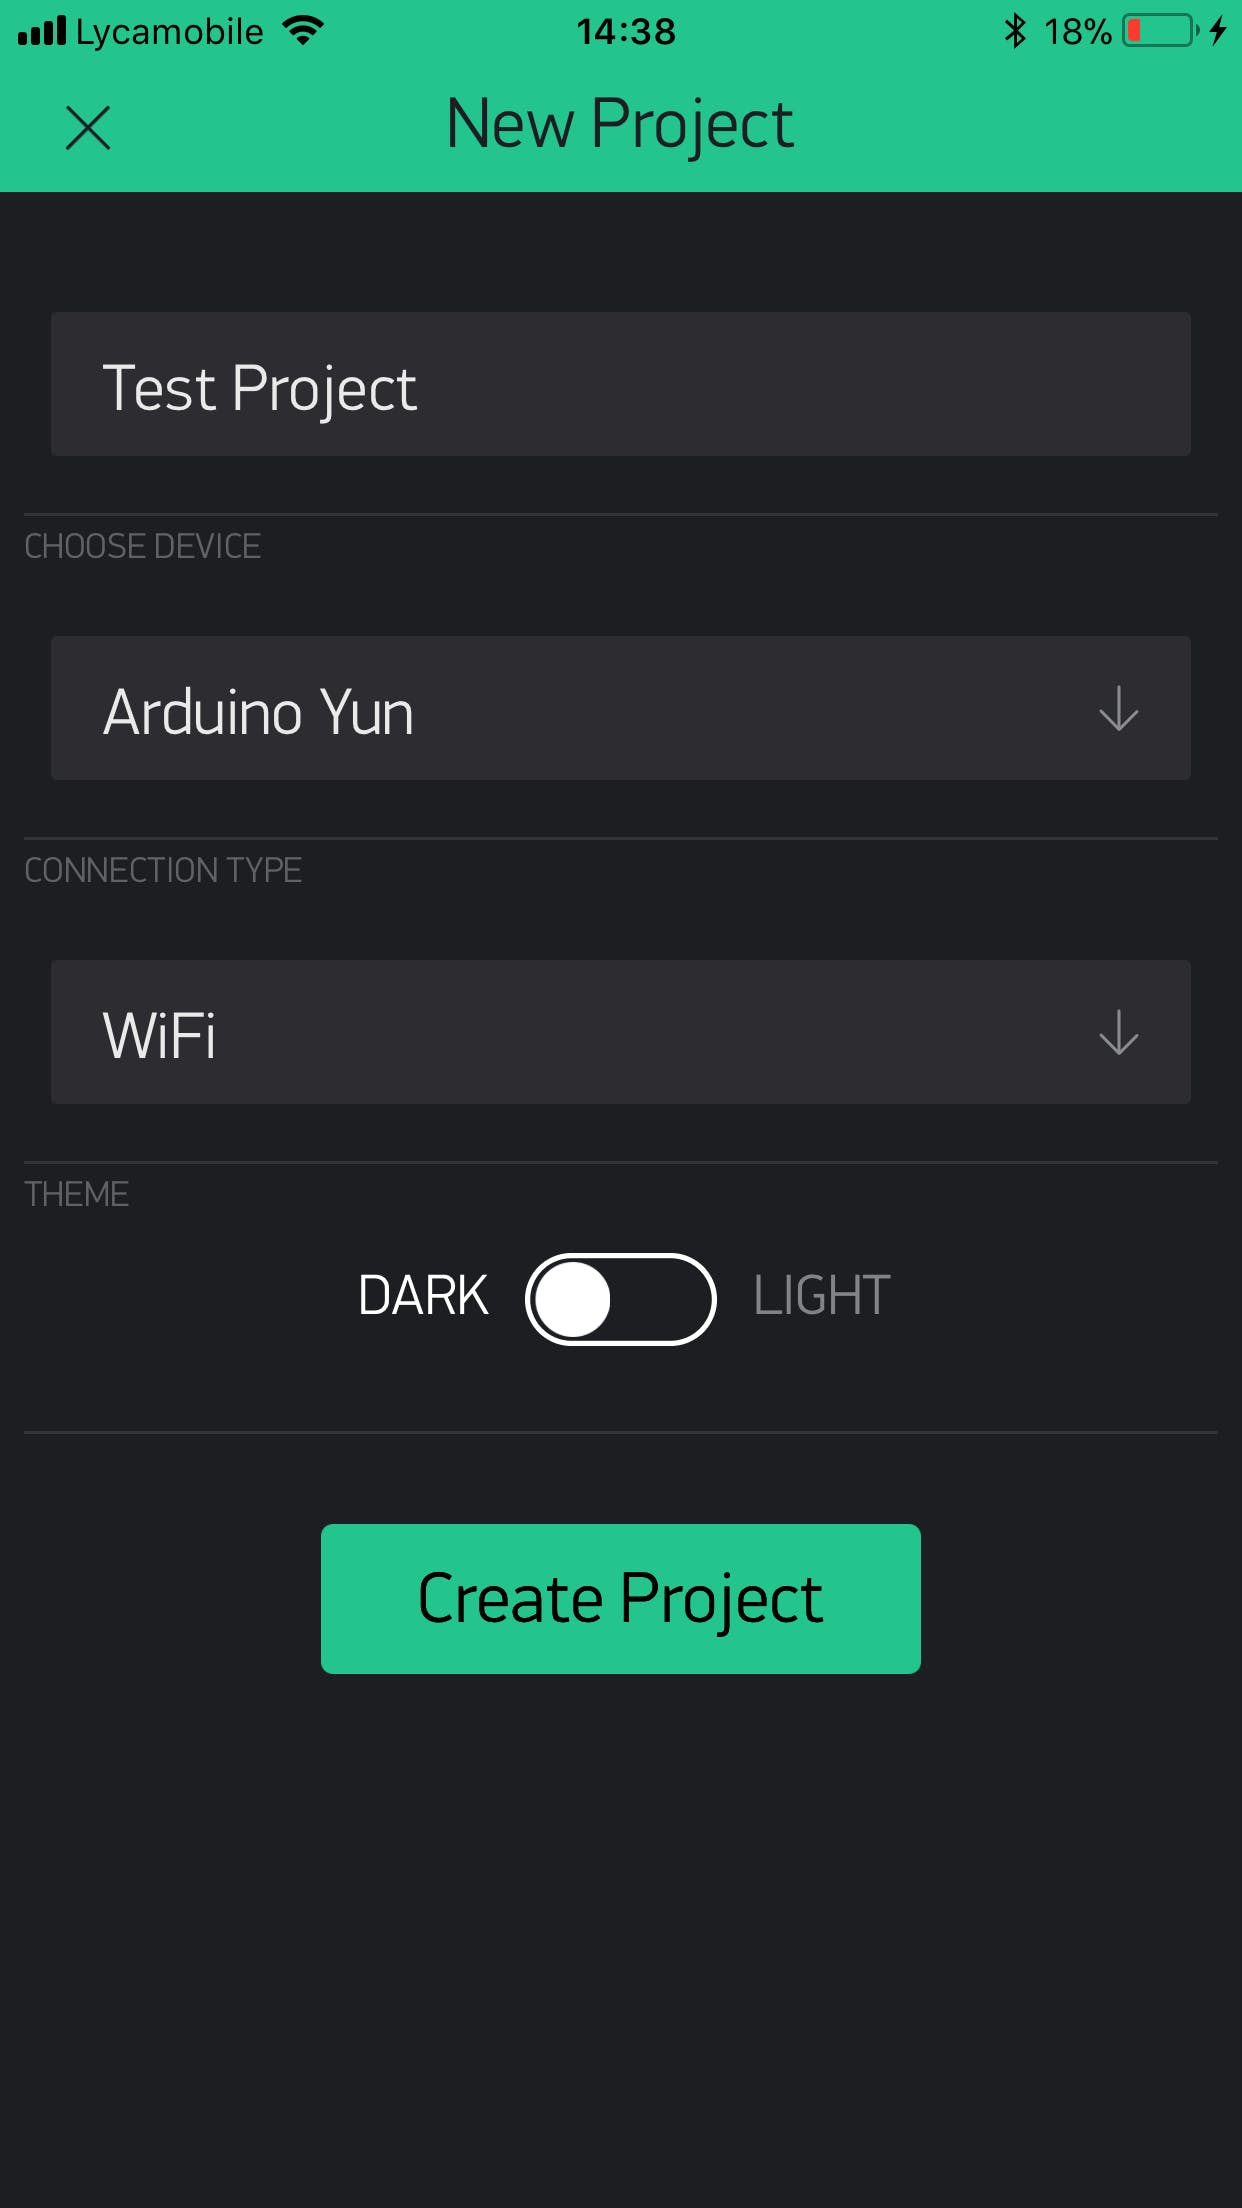 Give your project a name and select the Board as Arduino Yun and connection type as WiFi, click Create project